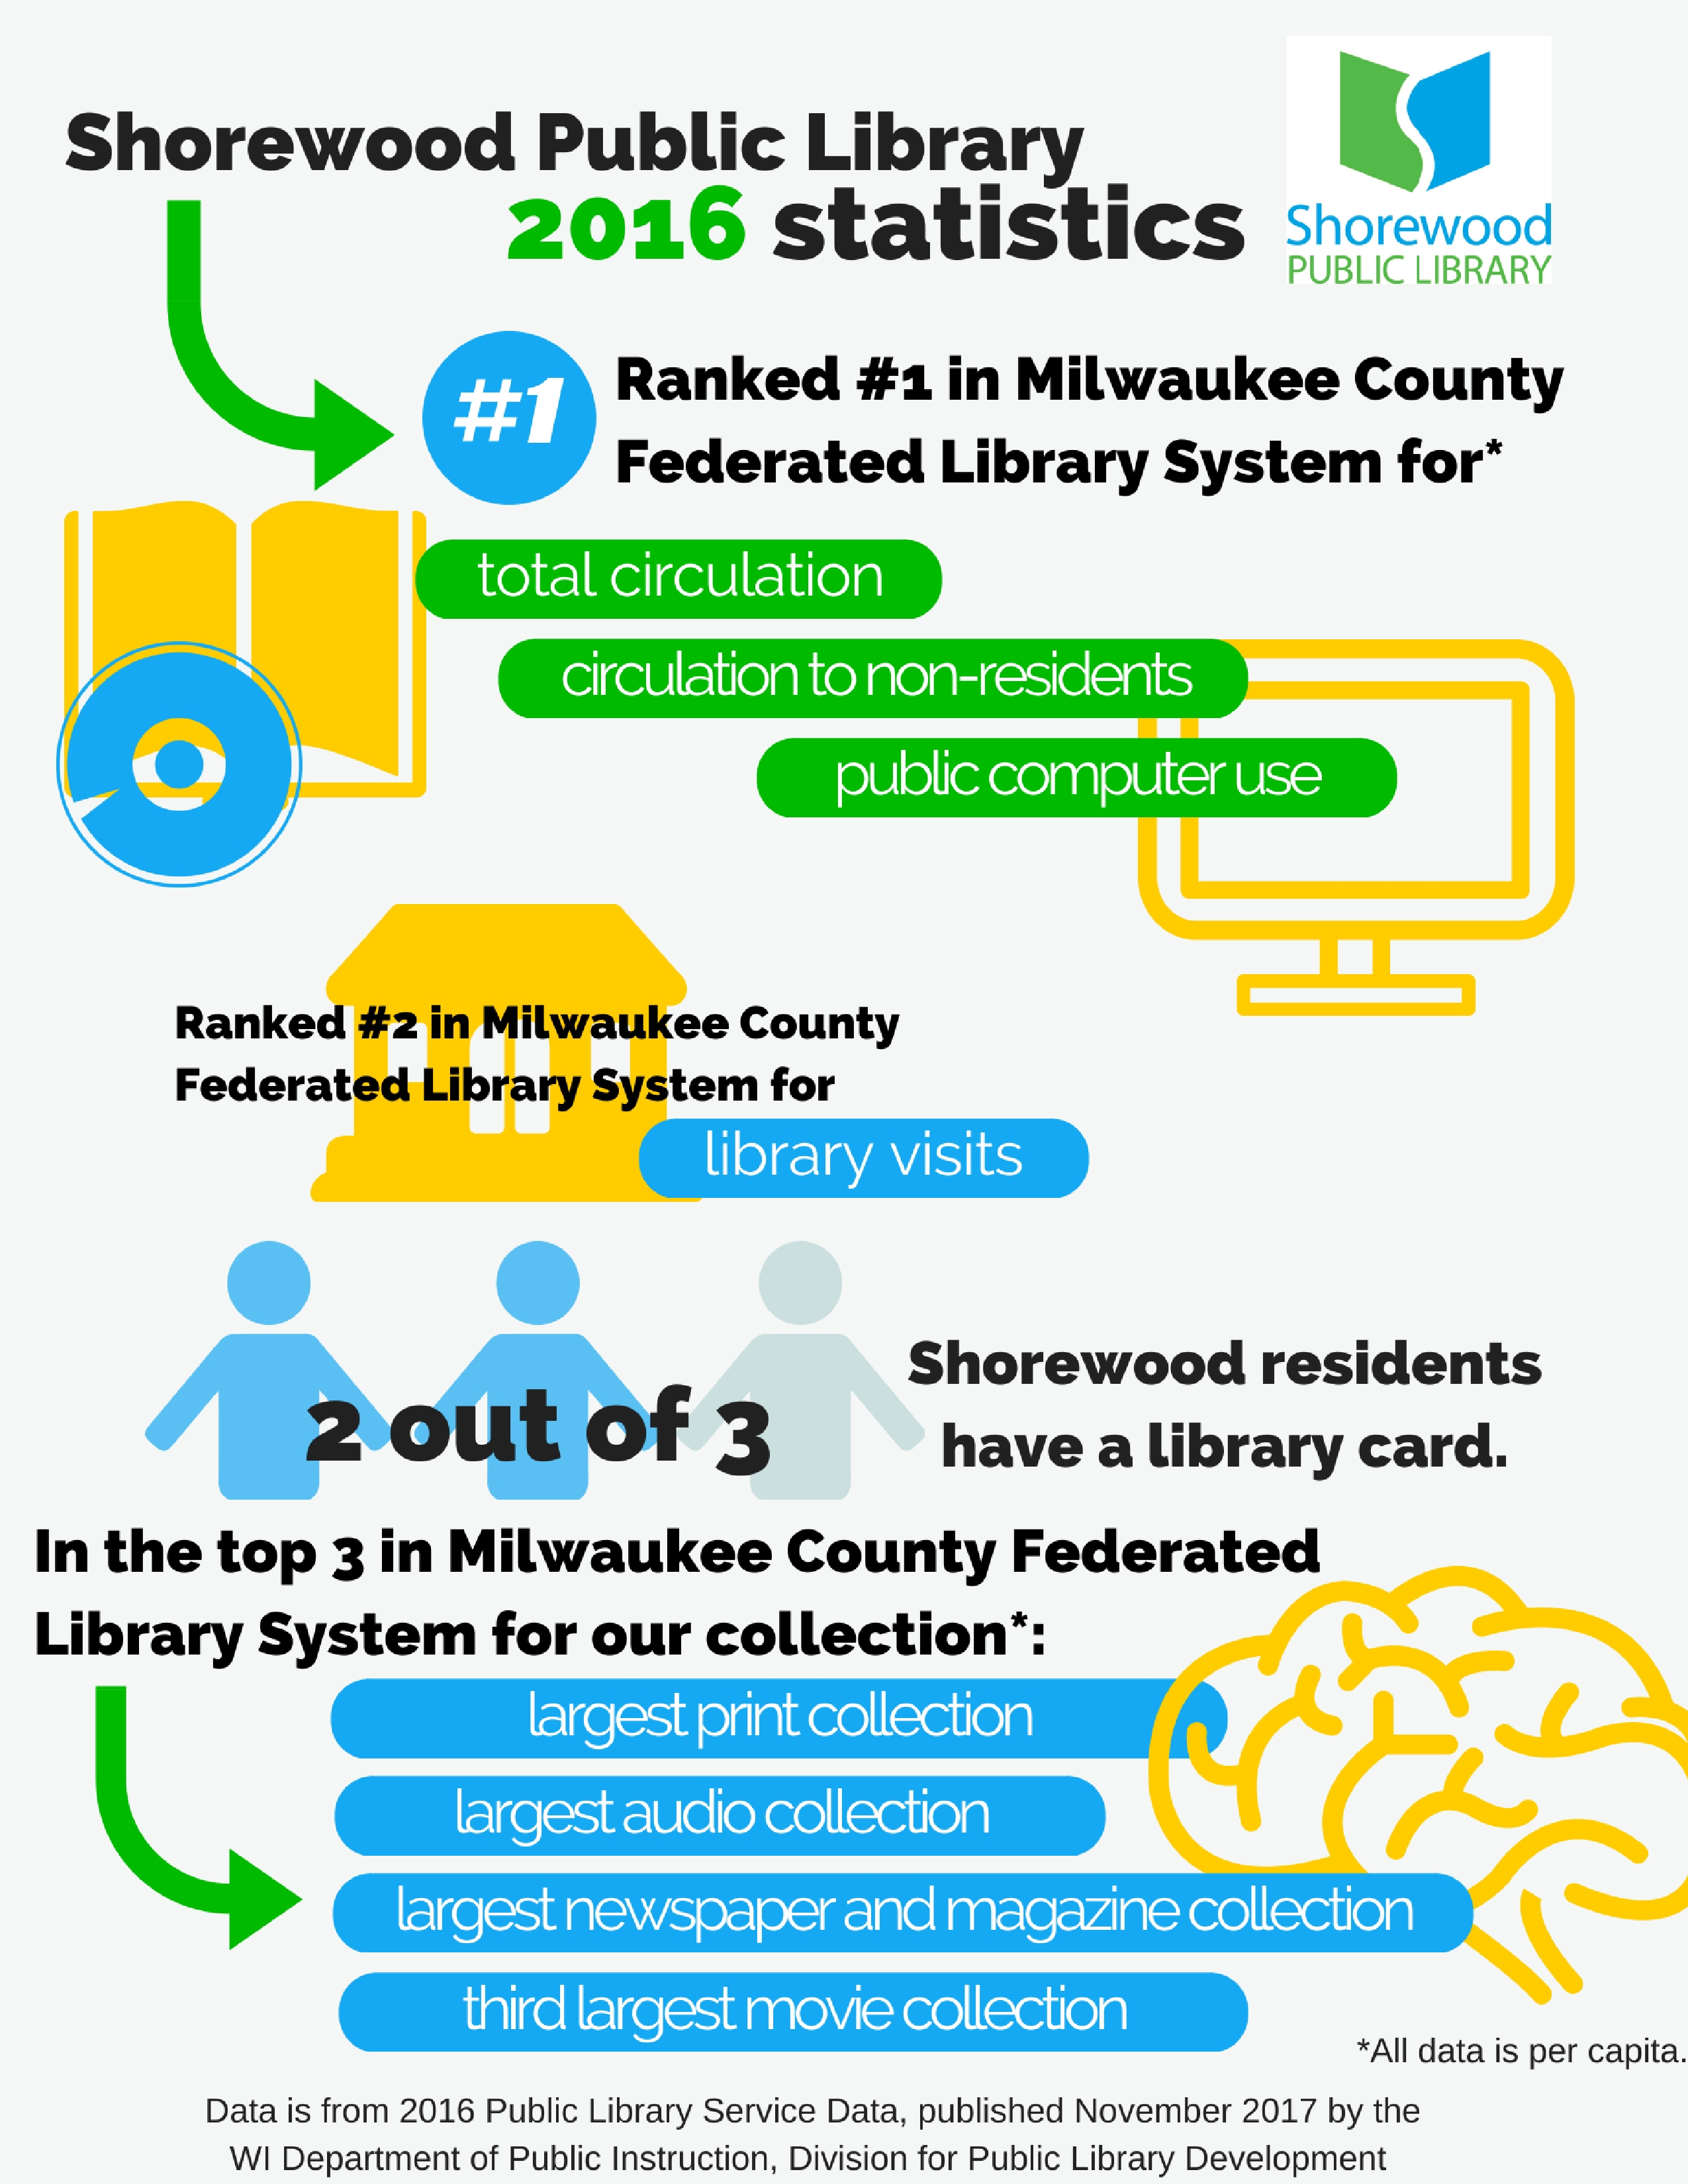 Flyer displaying the Shorewood Public Library 2016 Statistics. Ranked #1 in Milwaukee Federated Library System for